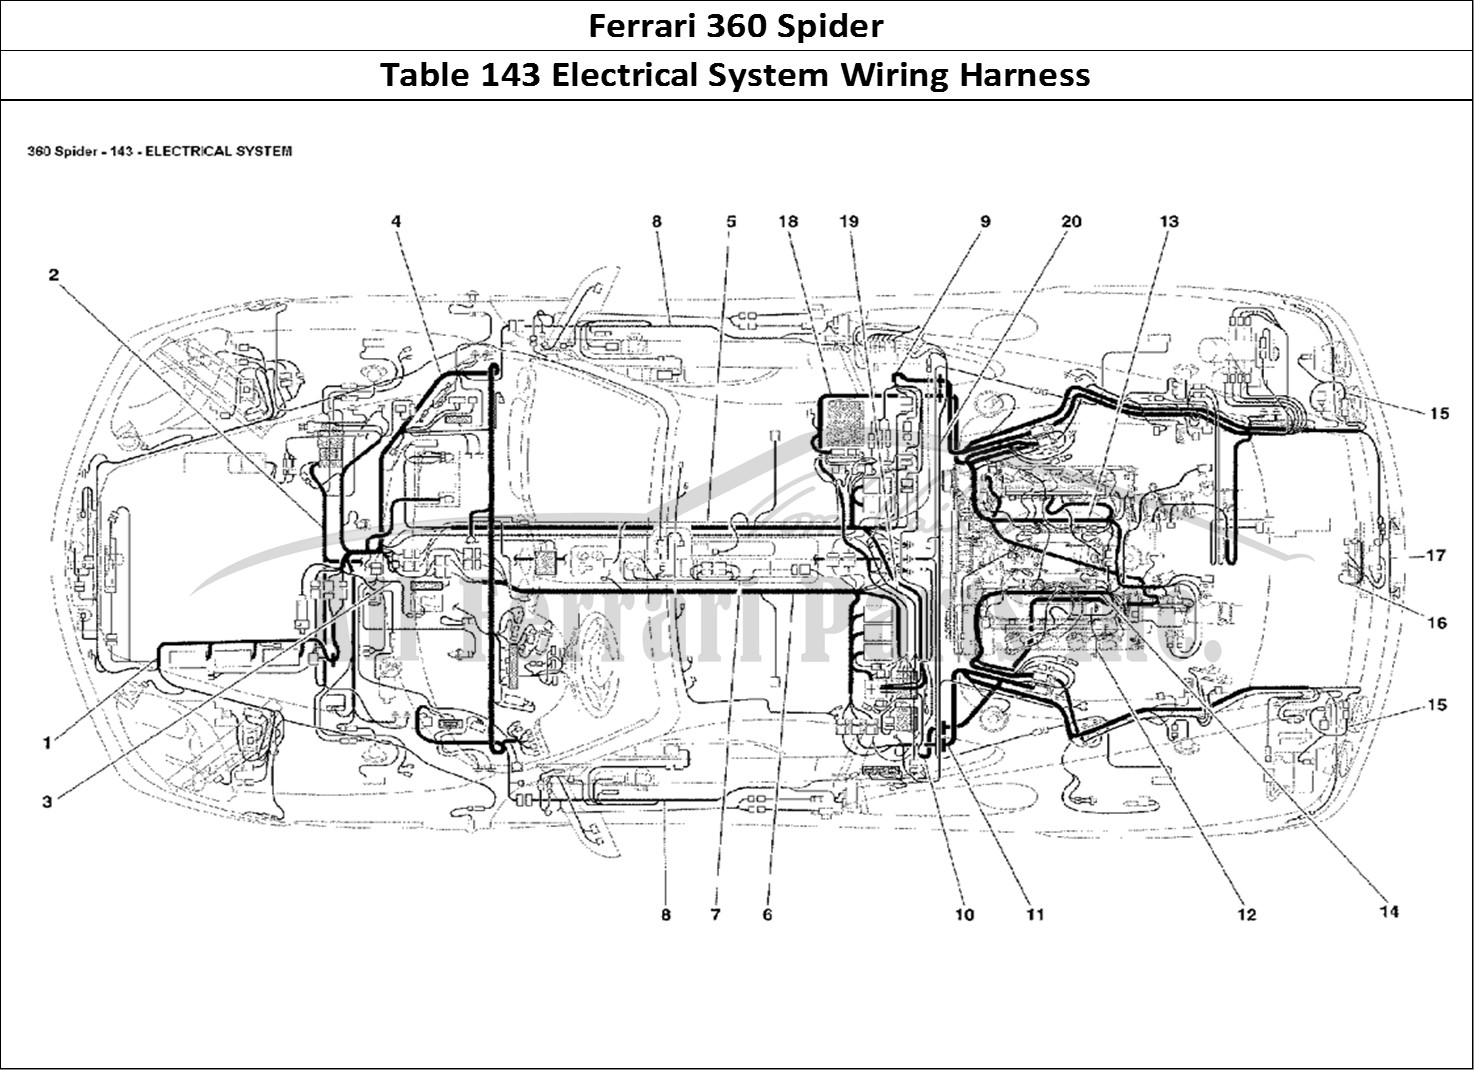 ferrari 328 engine diagram  ferrari  auto wiring diagram